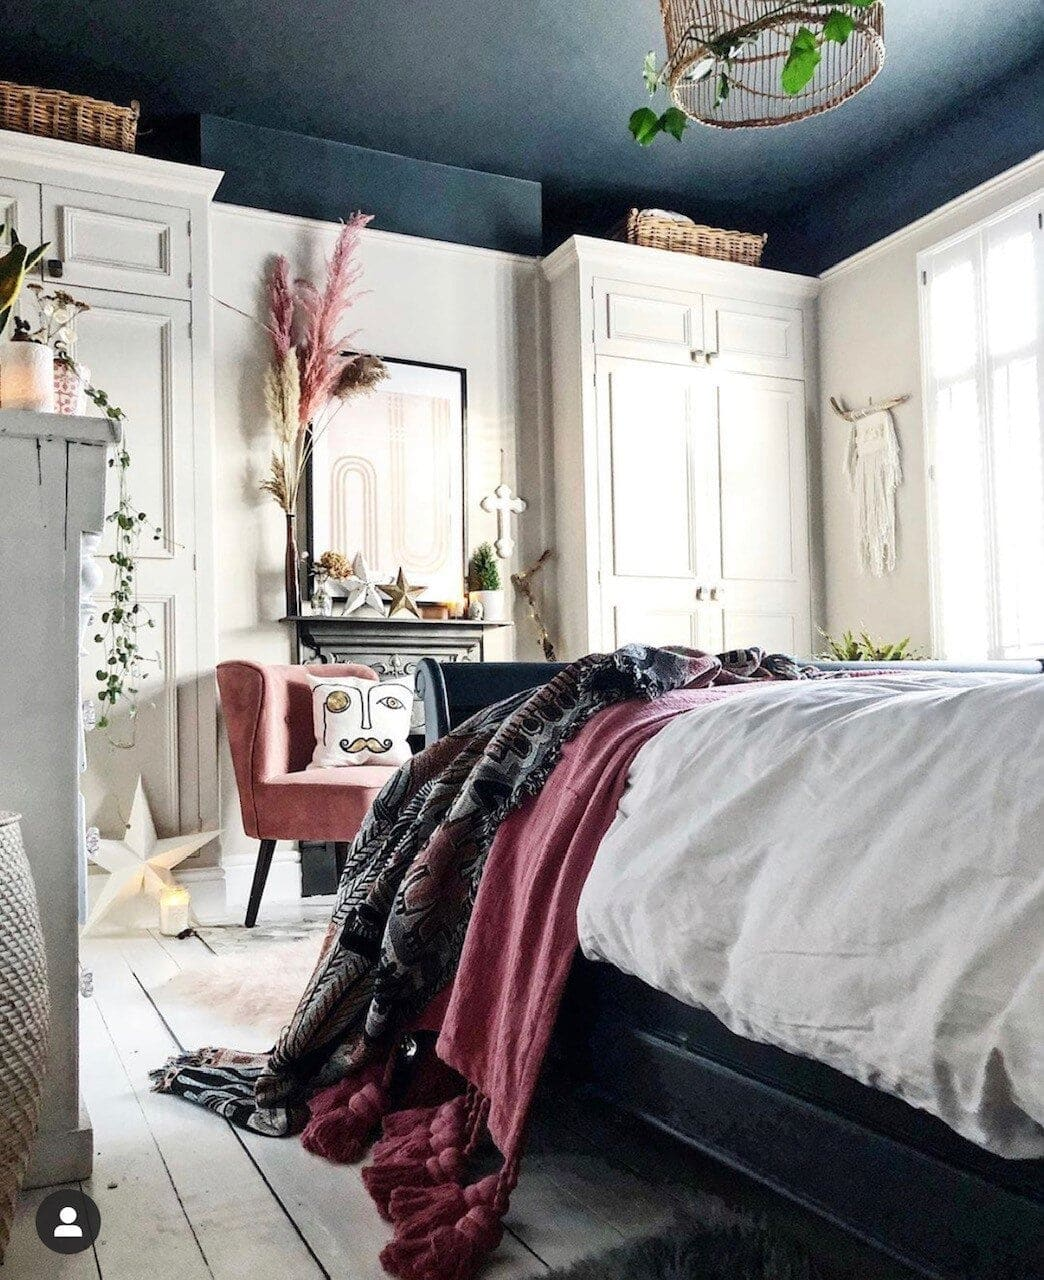 The black ceiling has no impact on the light in this bohemian room Image:  @theresagromski